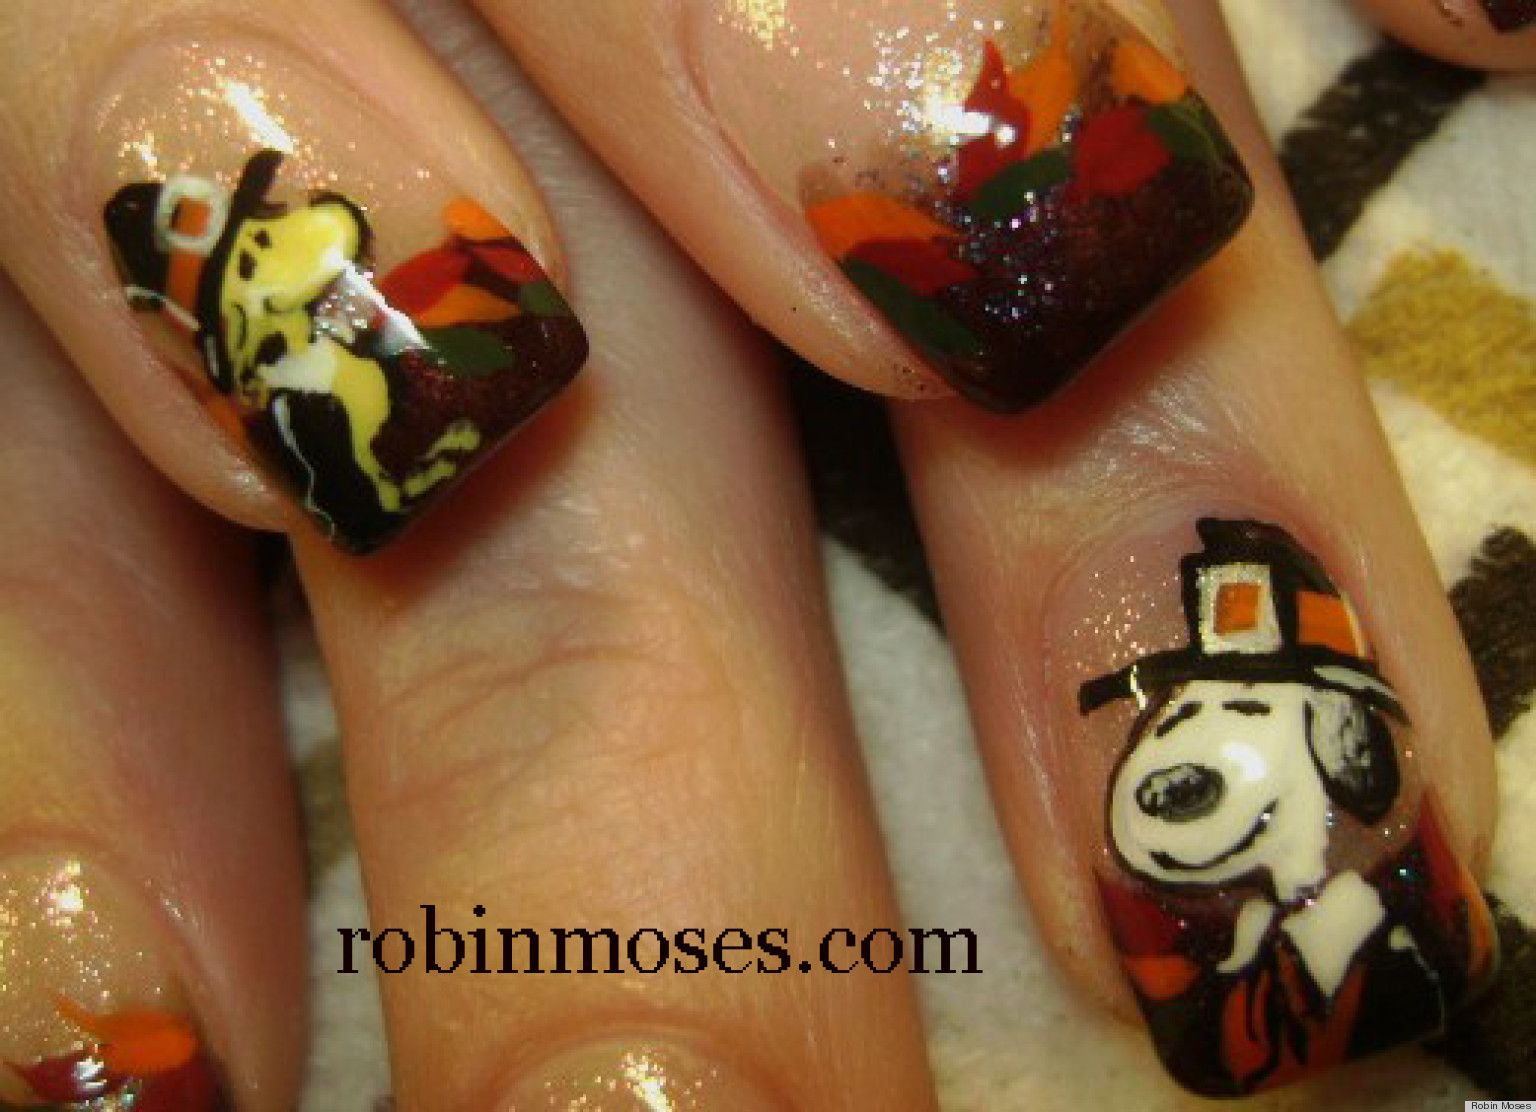 Thanksgiving nail art starring snoopy and woodstock thanksgiving thanksgiving nail art starring snoopy and woodstock prinsesfo Image collections